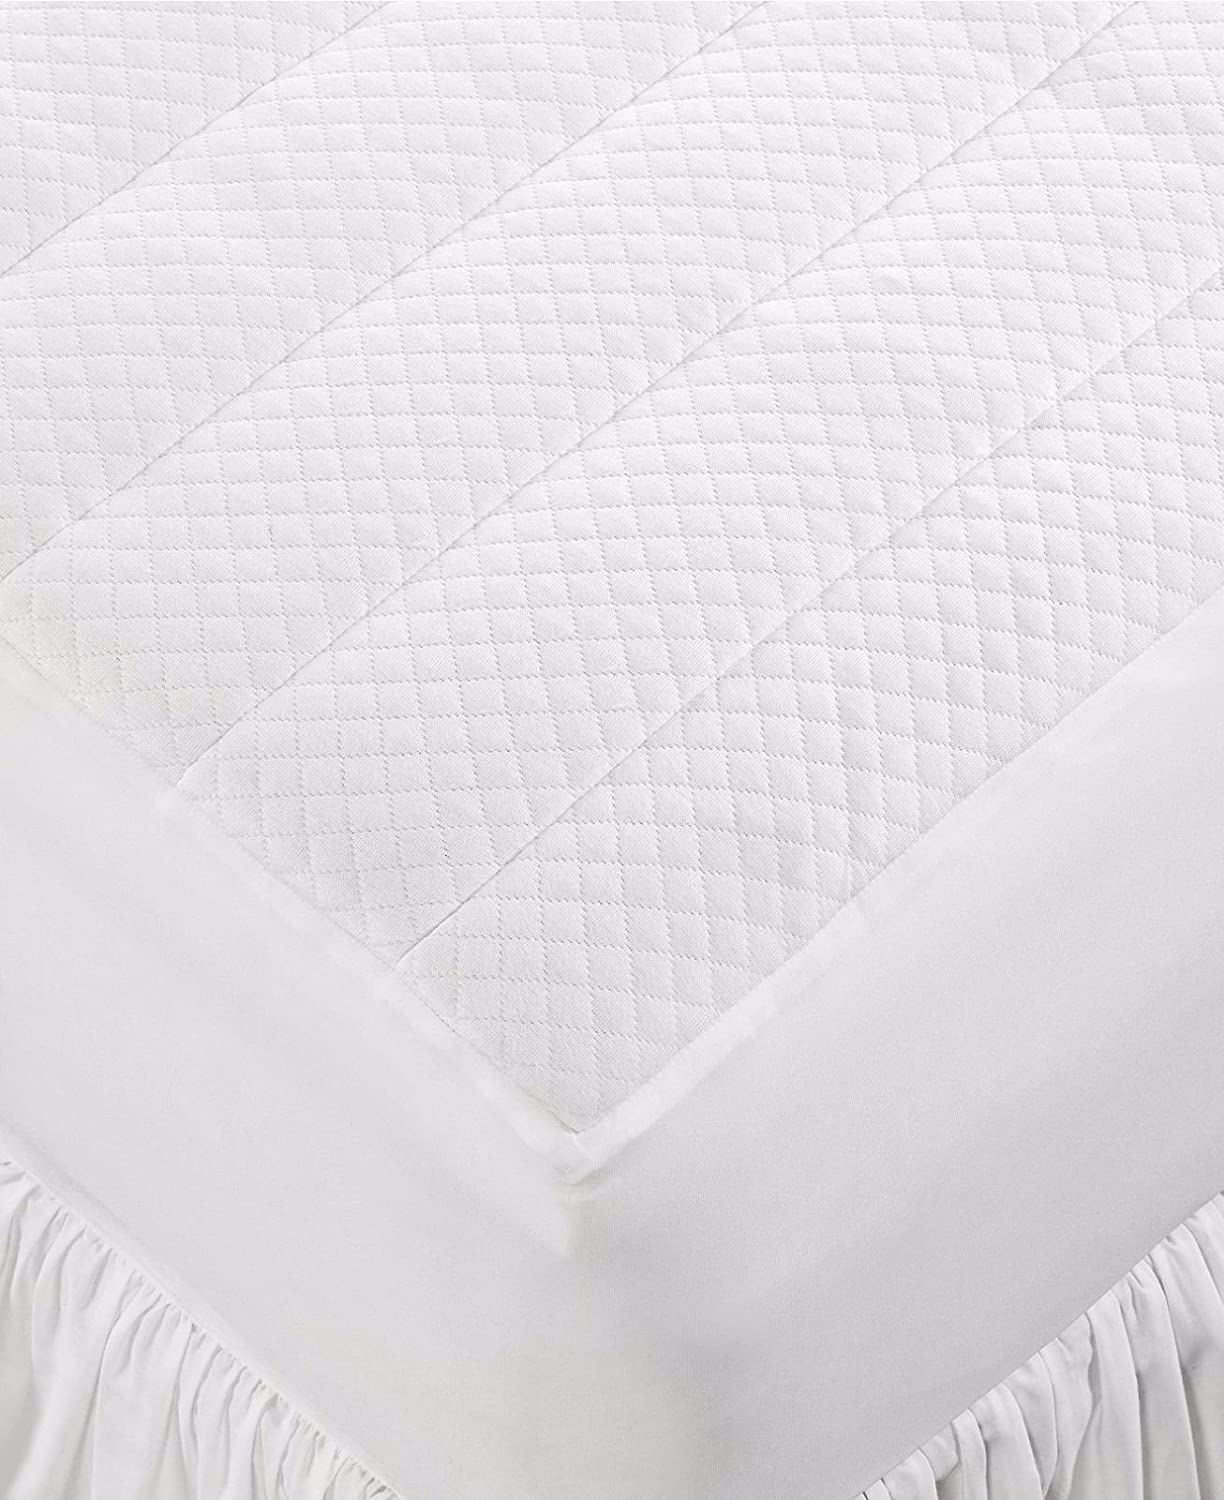 therapedic latex base magnolia lovely dealzz restonic post beautiful memory sweet mattress foam review inch set unique of pillow elegant related king